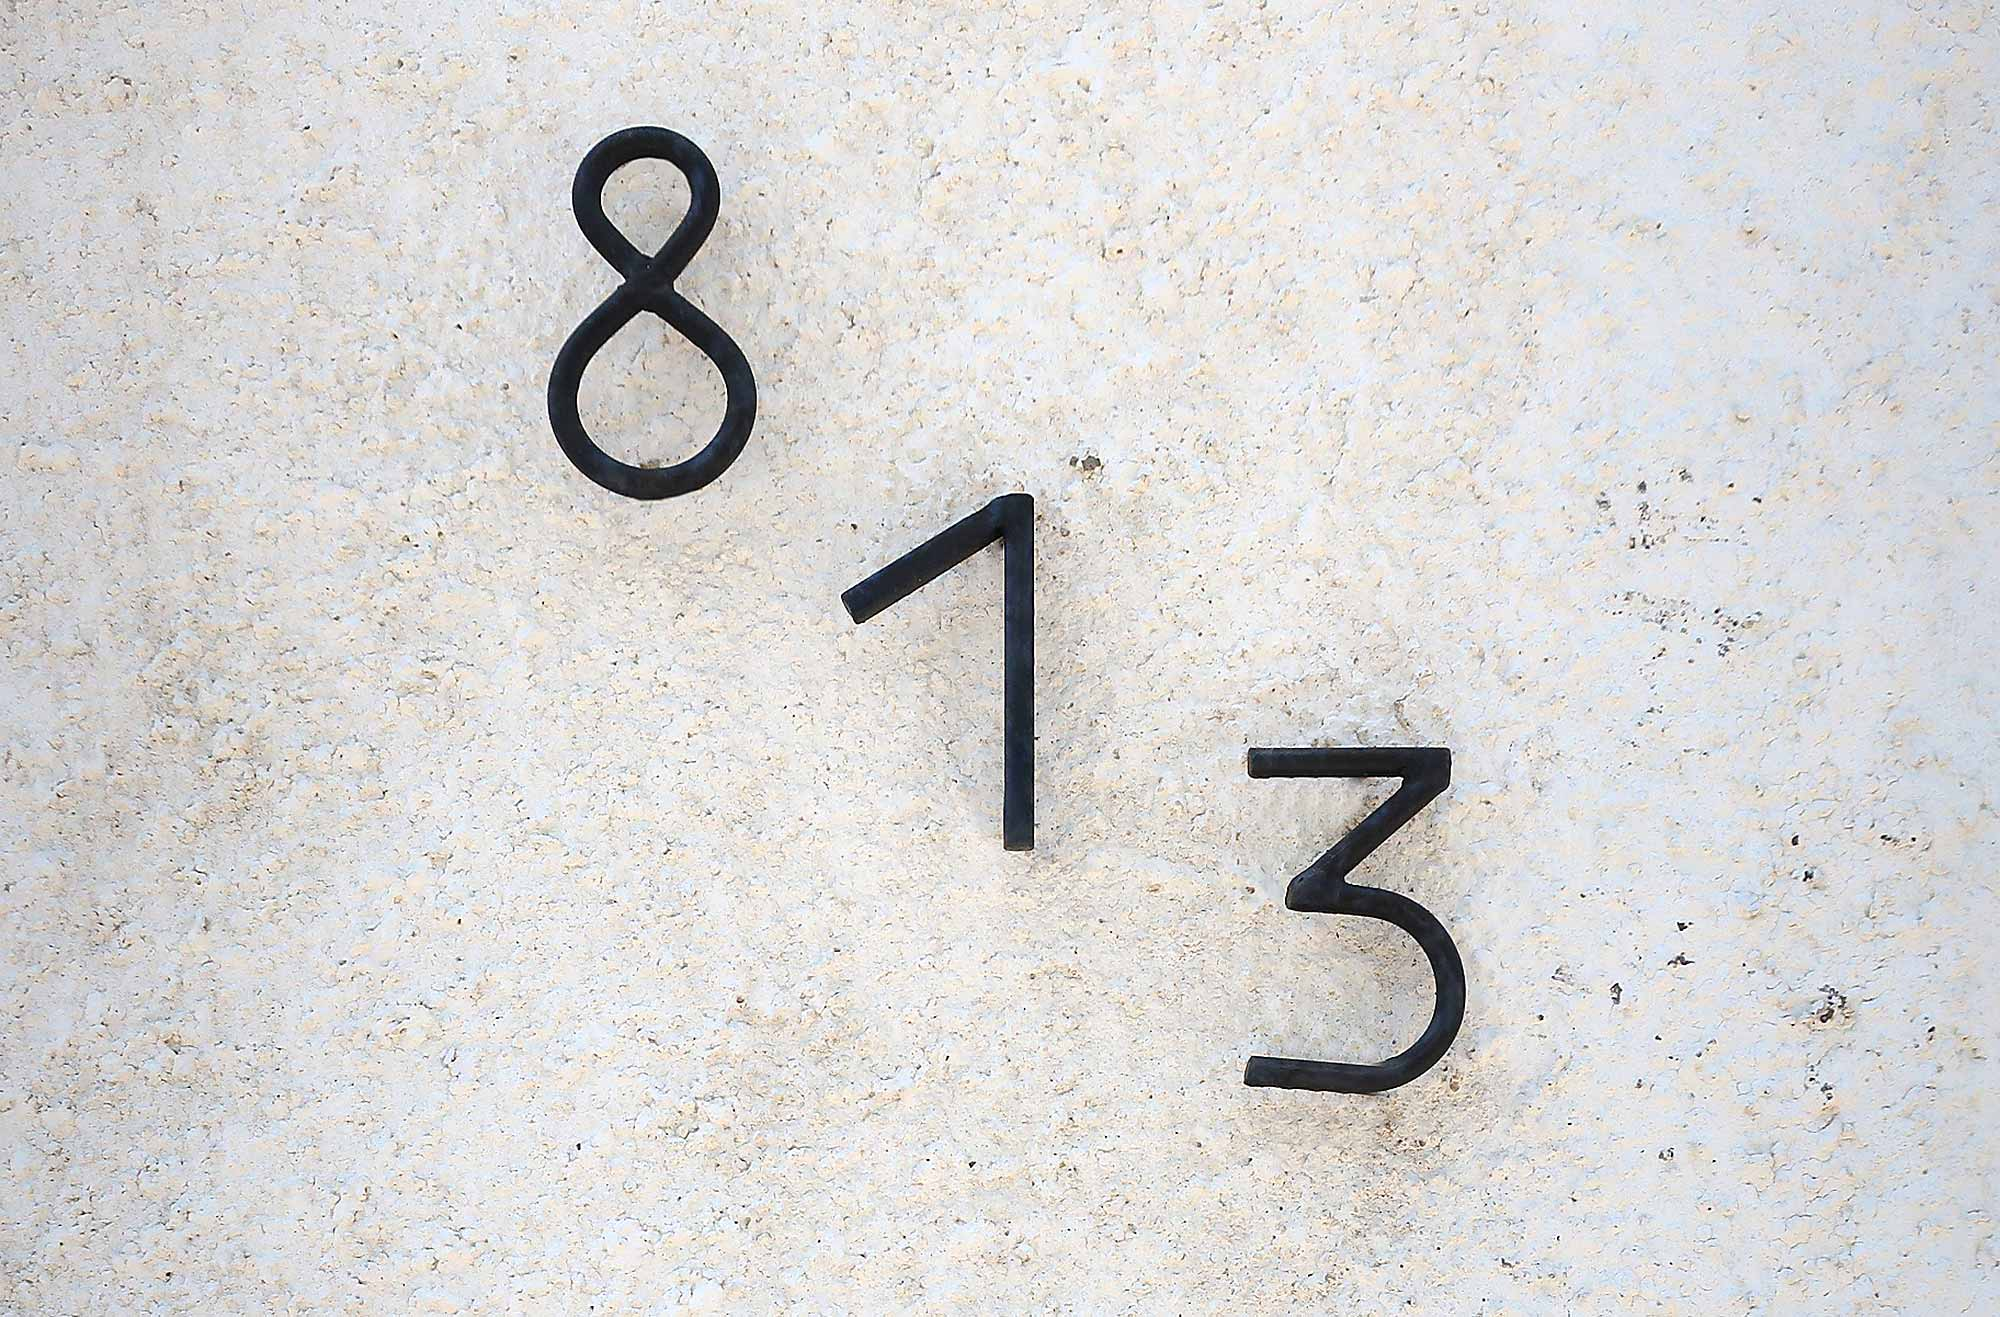 Interesting manner of writing numbers out of one metal, found in Limache Chile.